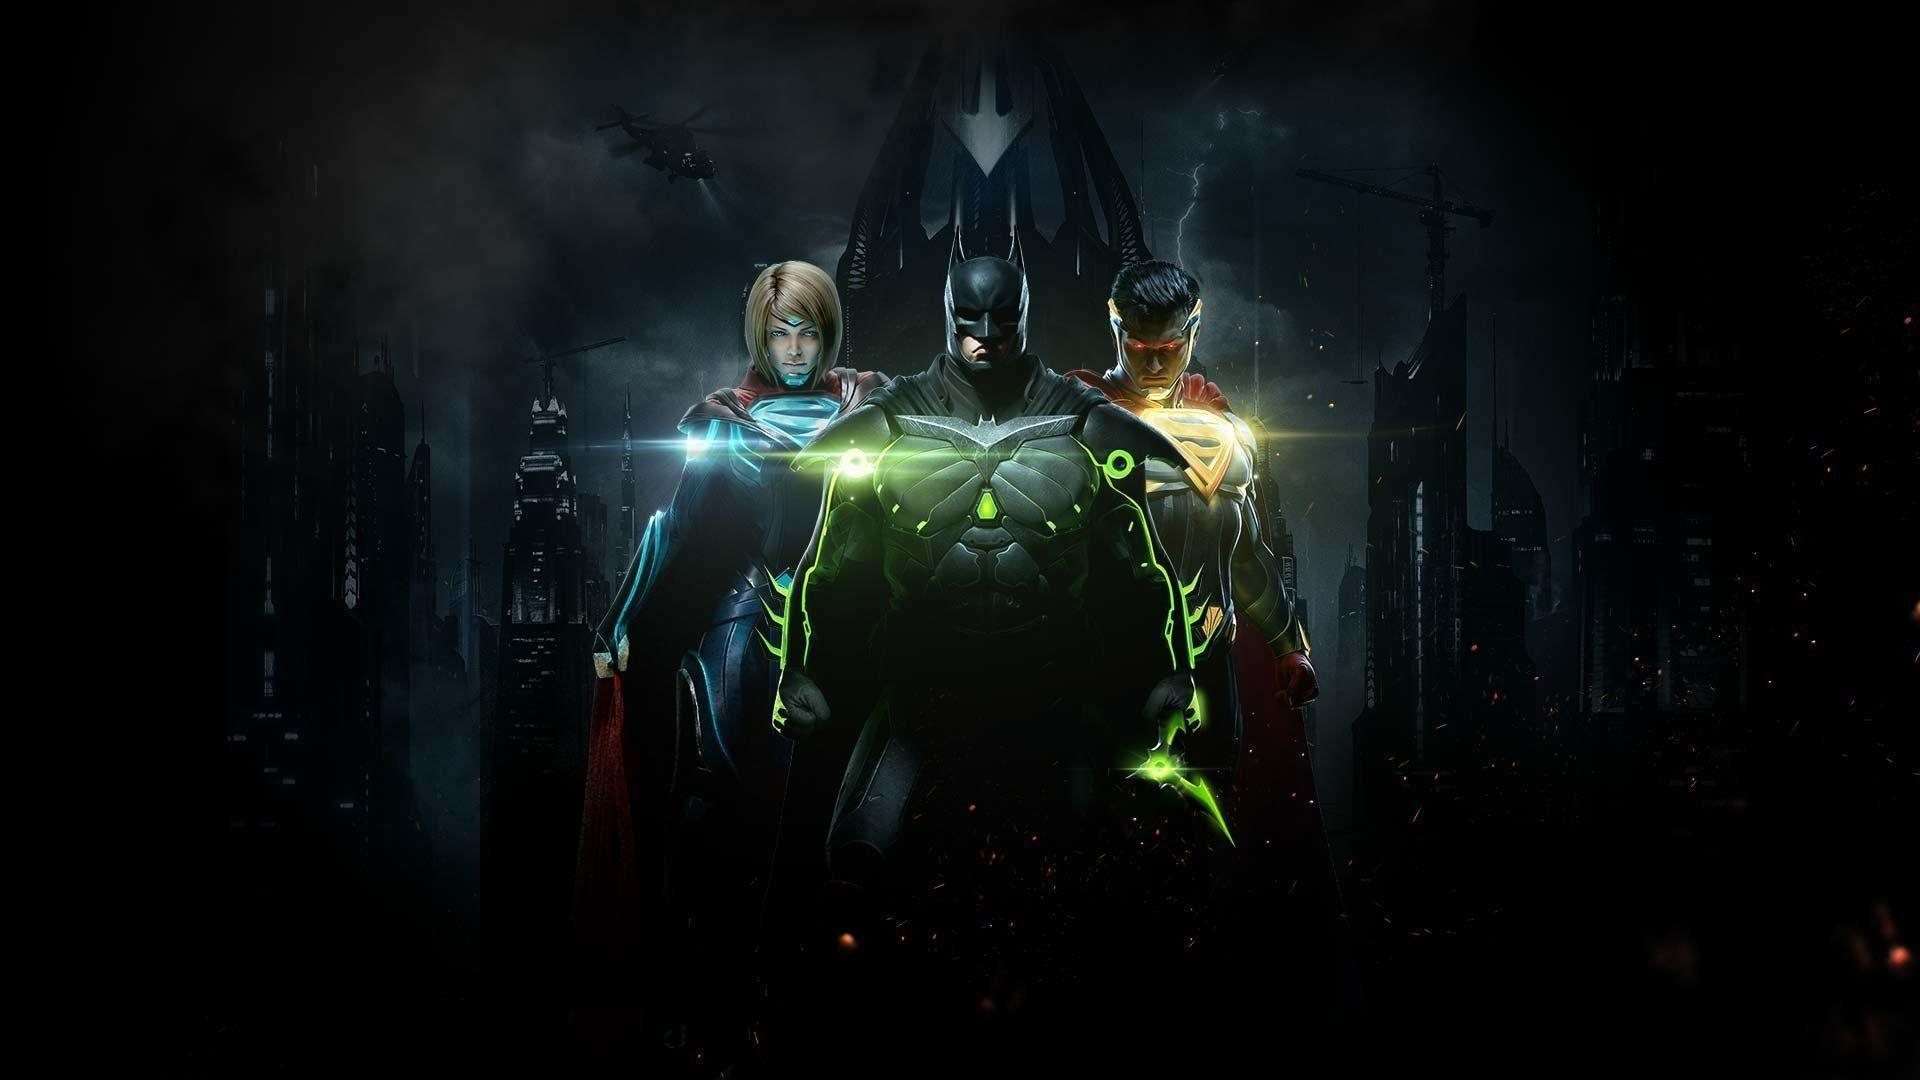 Injustice 2 Wallpapers Wallpaper Cave